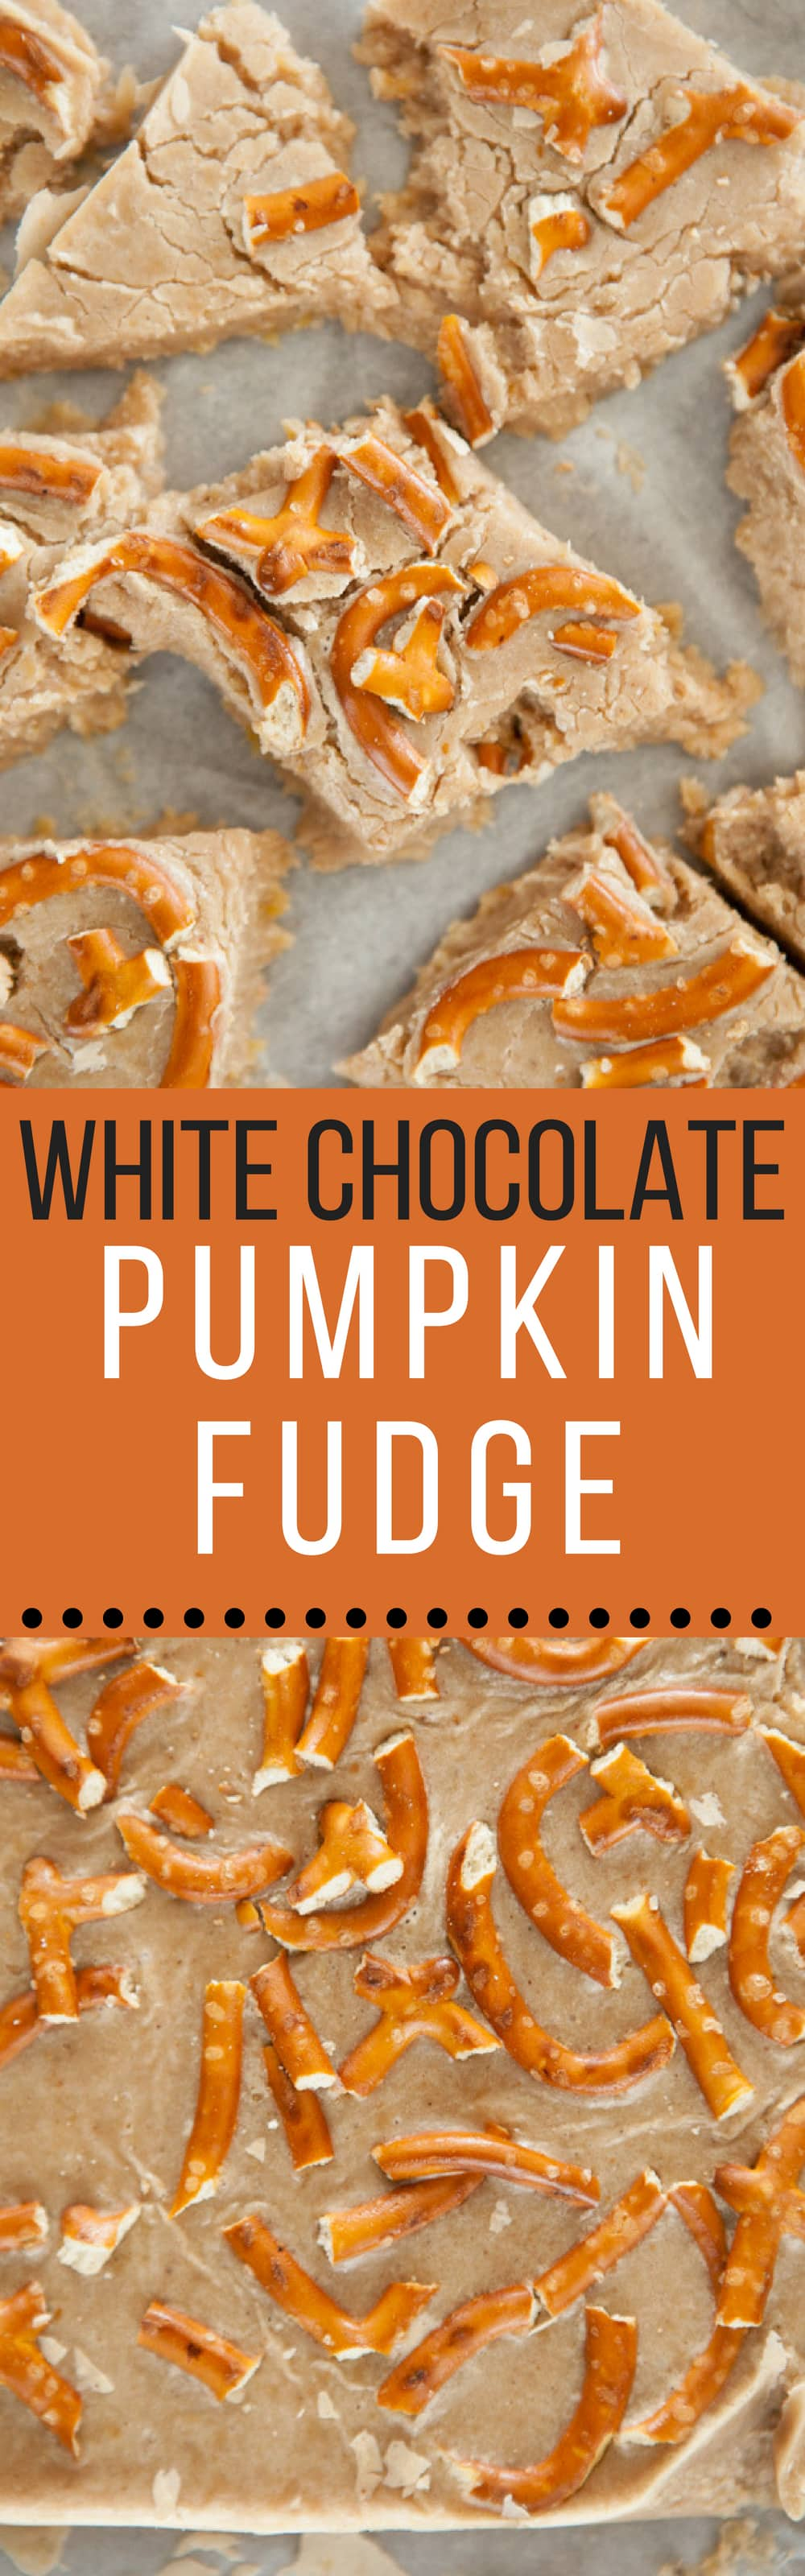 This Pumpkin Fudge with white chocolate chips and pretzels is a no-bake easy homemade fudge recipe.  The chocolate and pretzels give it a delicious sweet and salty taste! You can make these as good afterschool healthy snacks.